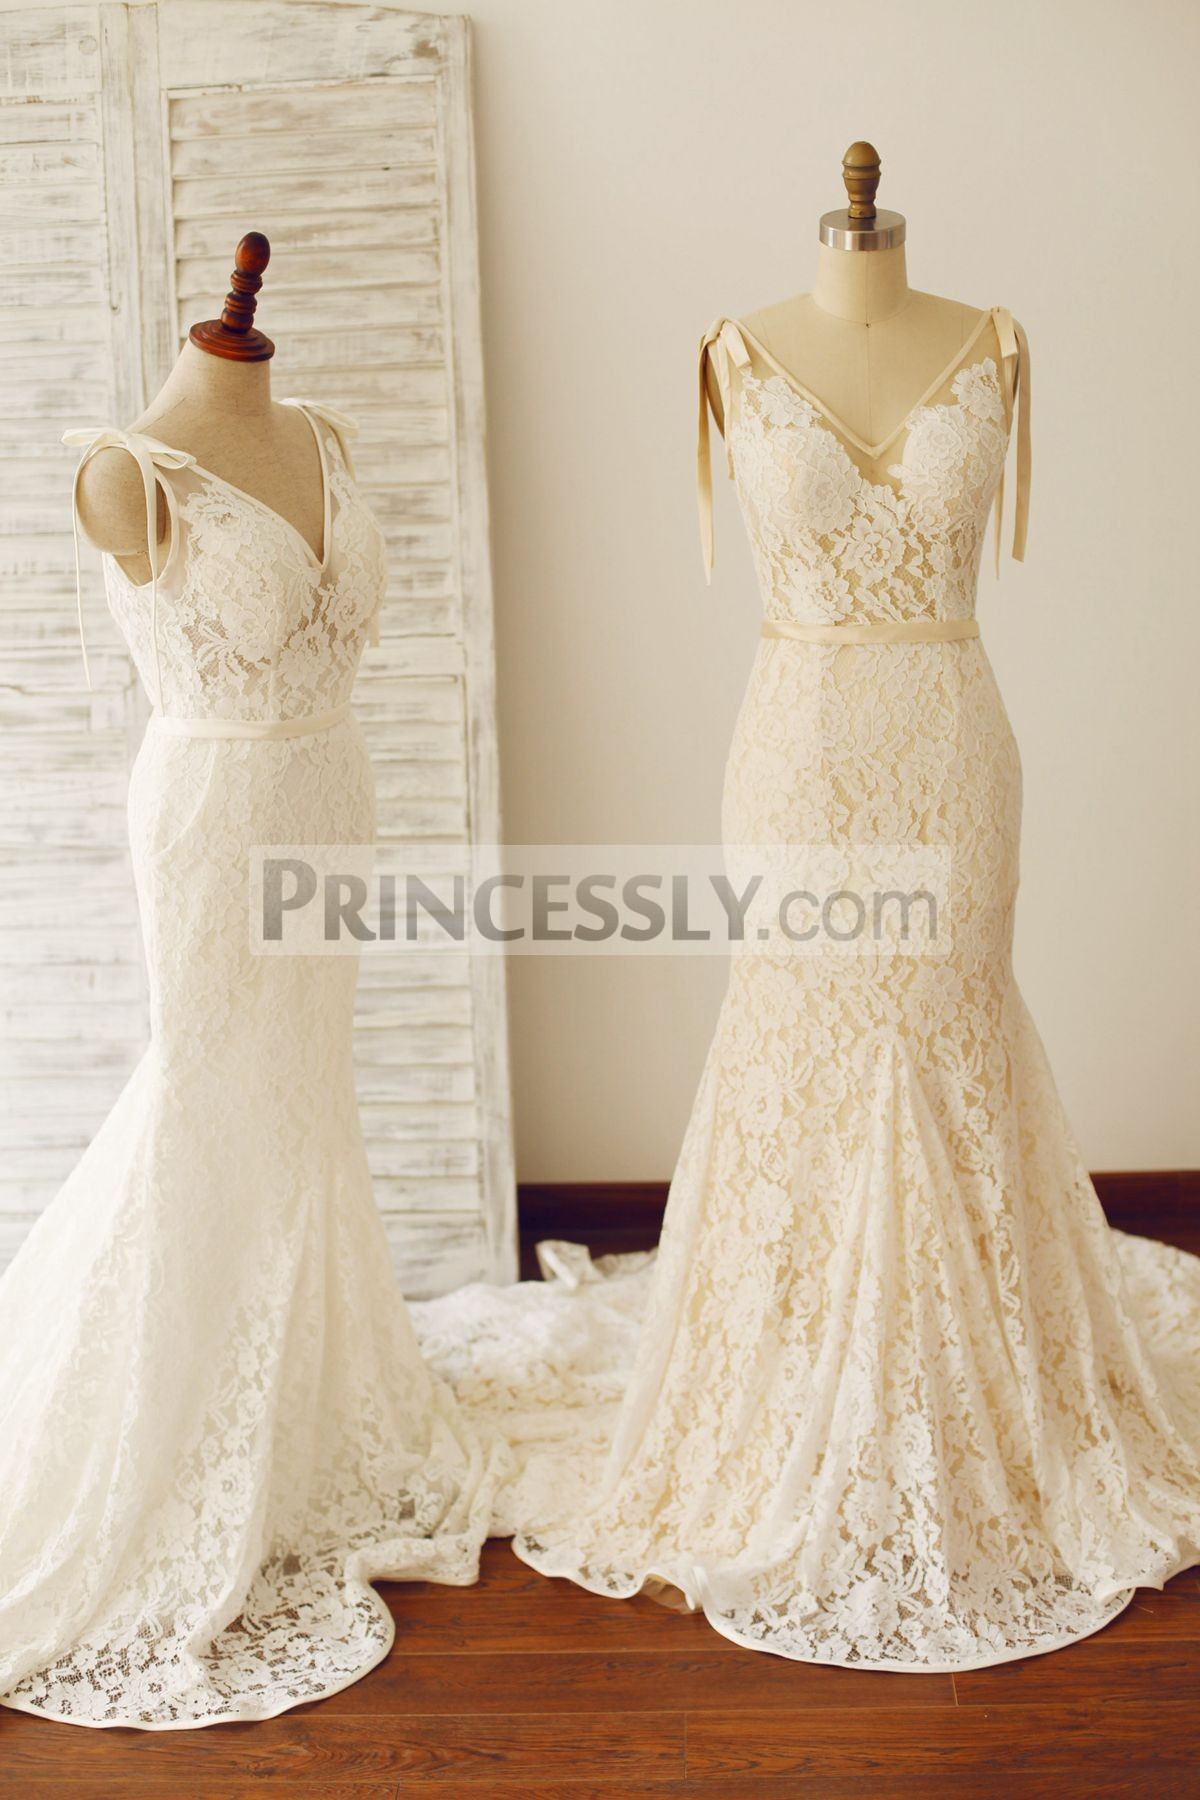 Princessly.com-K1000228-Sexy Backless Mermaid Lace Wedding Dress with Chapel Train-31